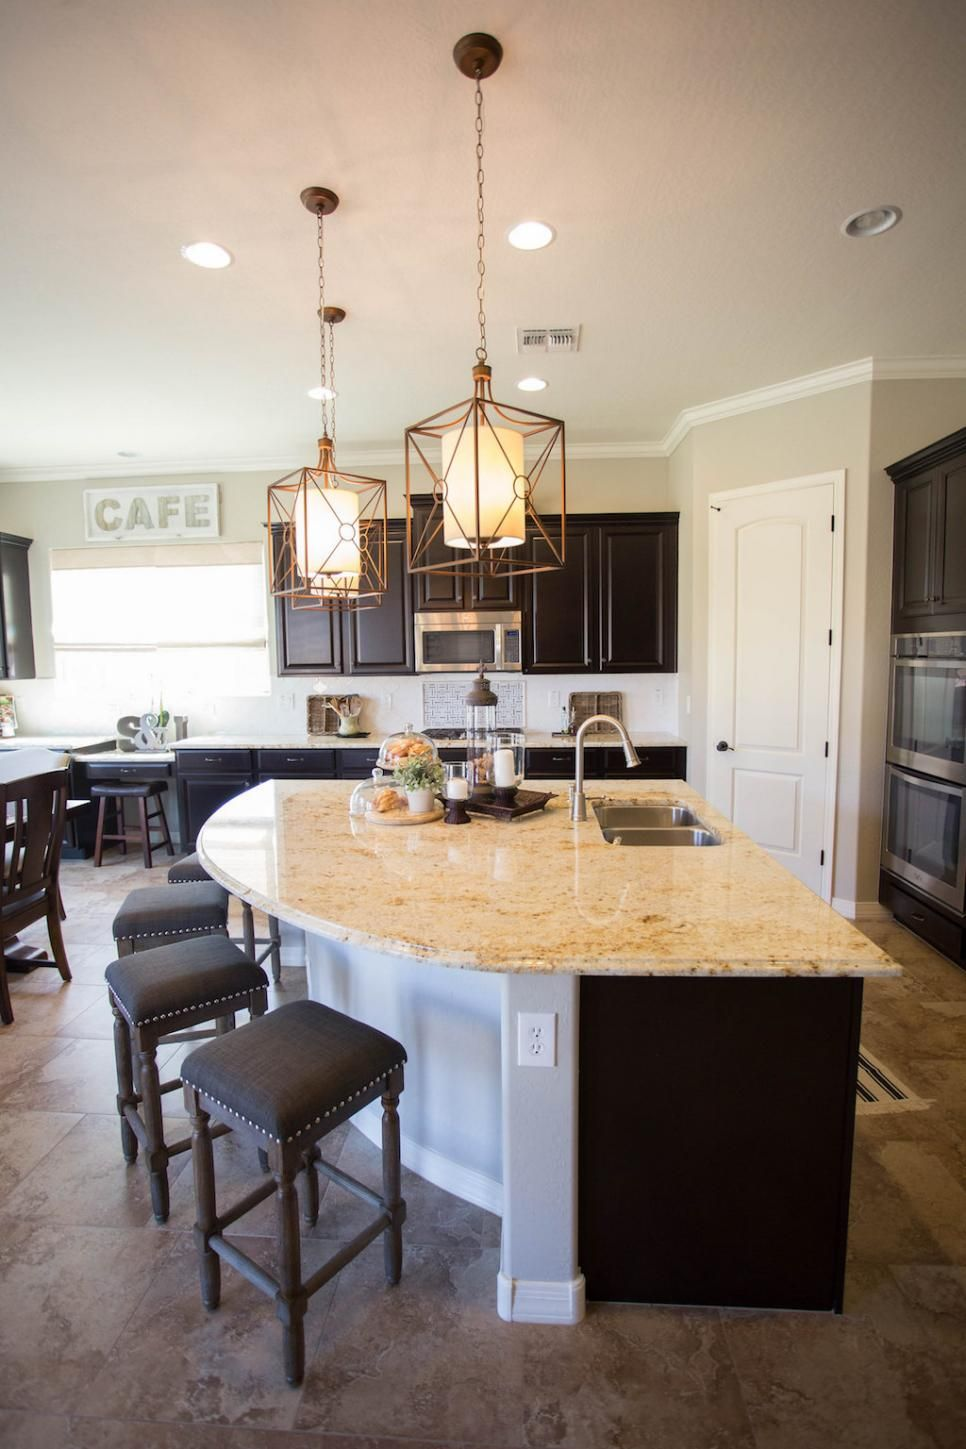 The unique curved kitchen island provides extra casual